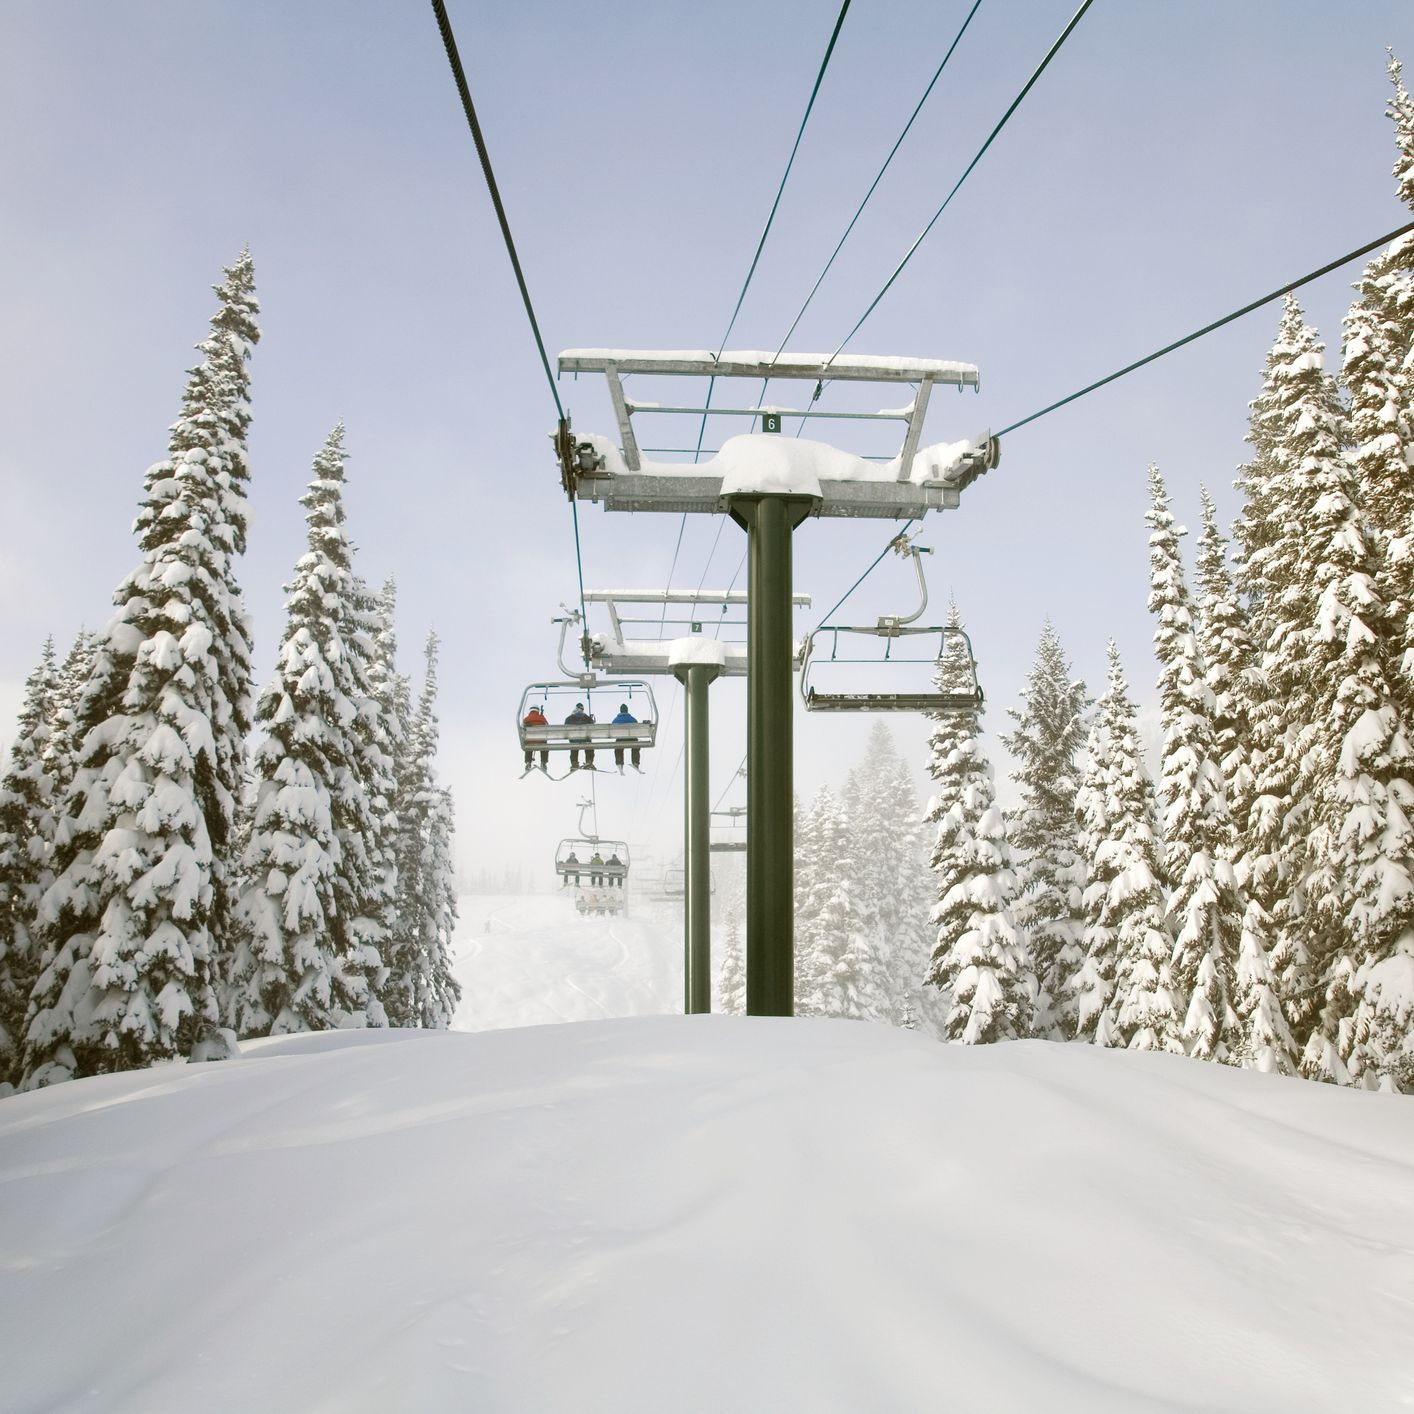 Christmas Village Ski Lift For Sale.The 7 Biggest Ski Resorts In Washington State With A Map